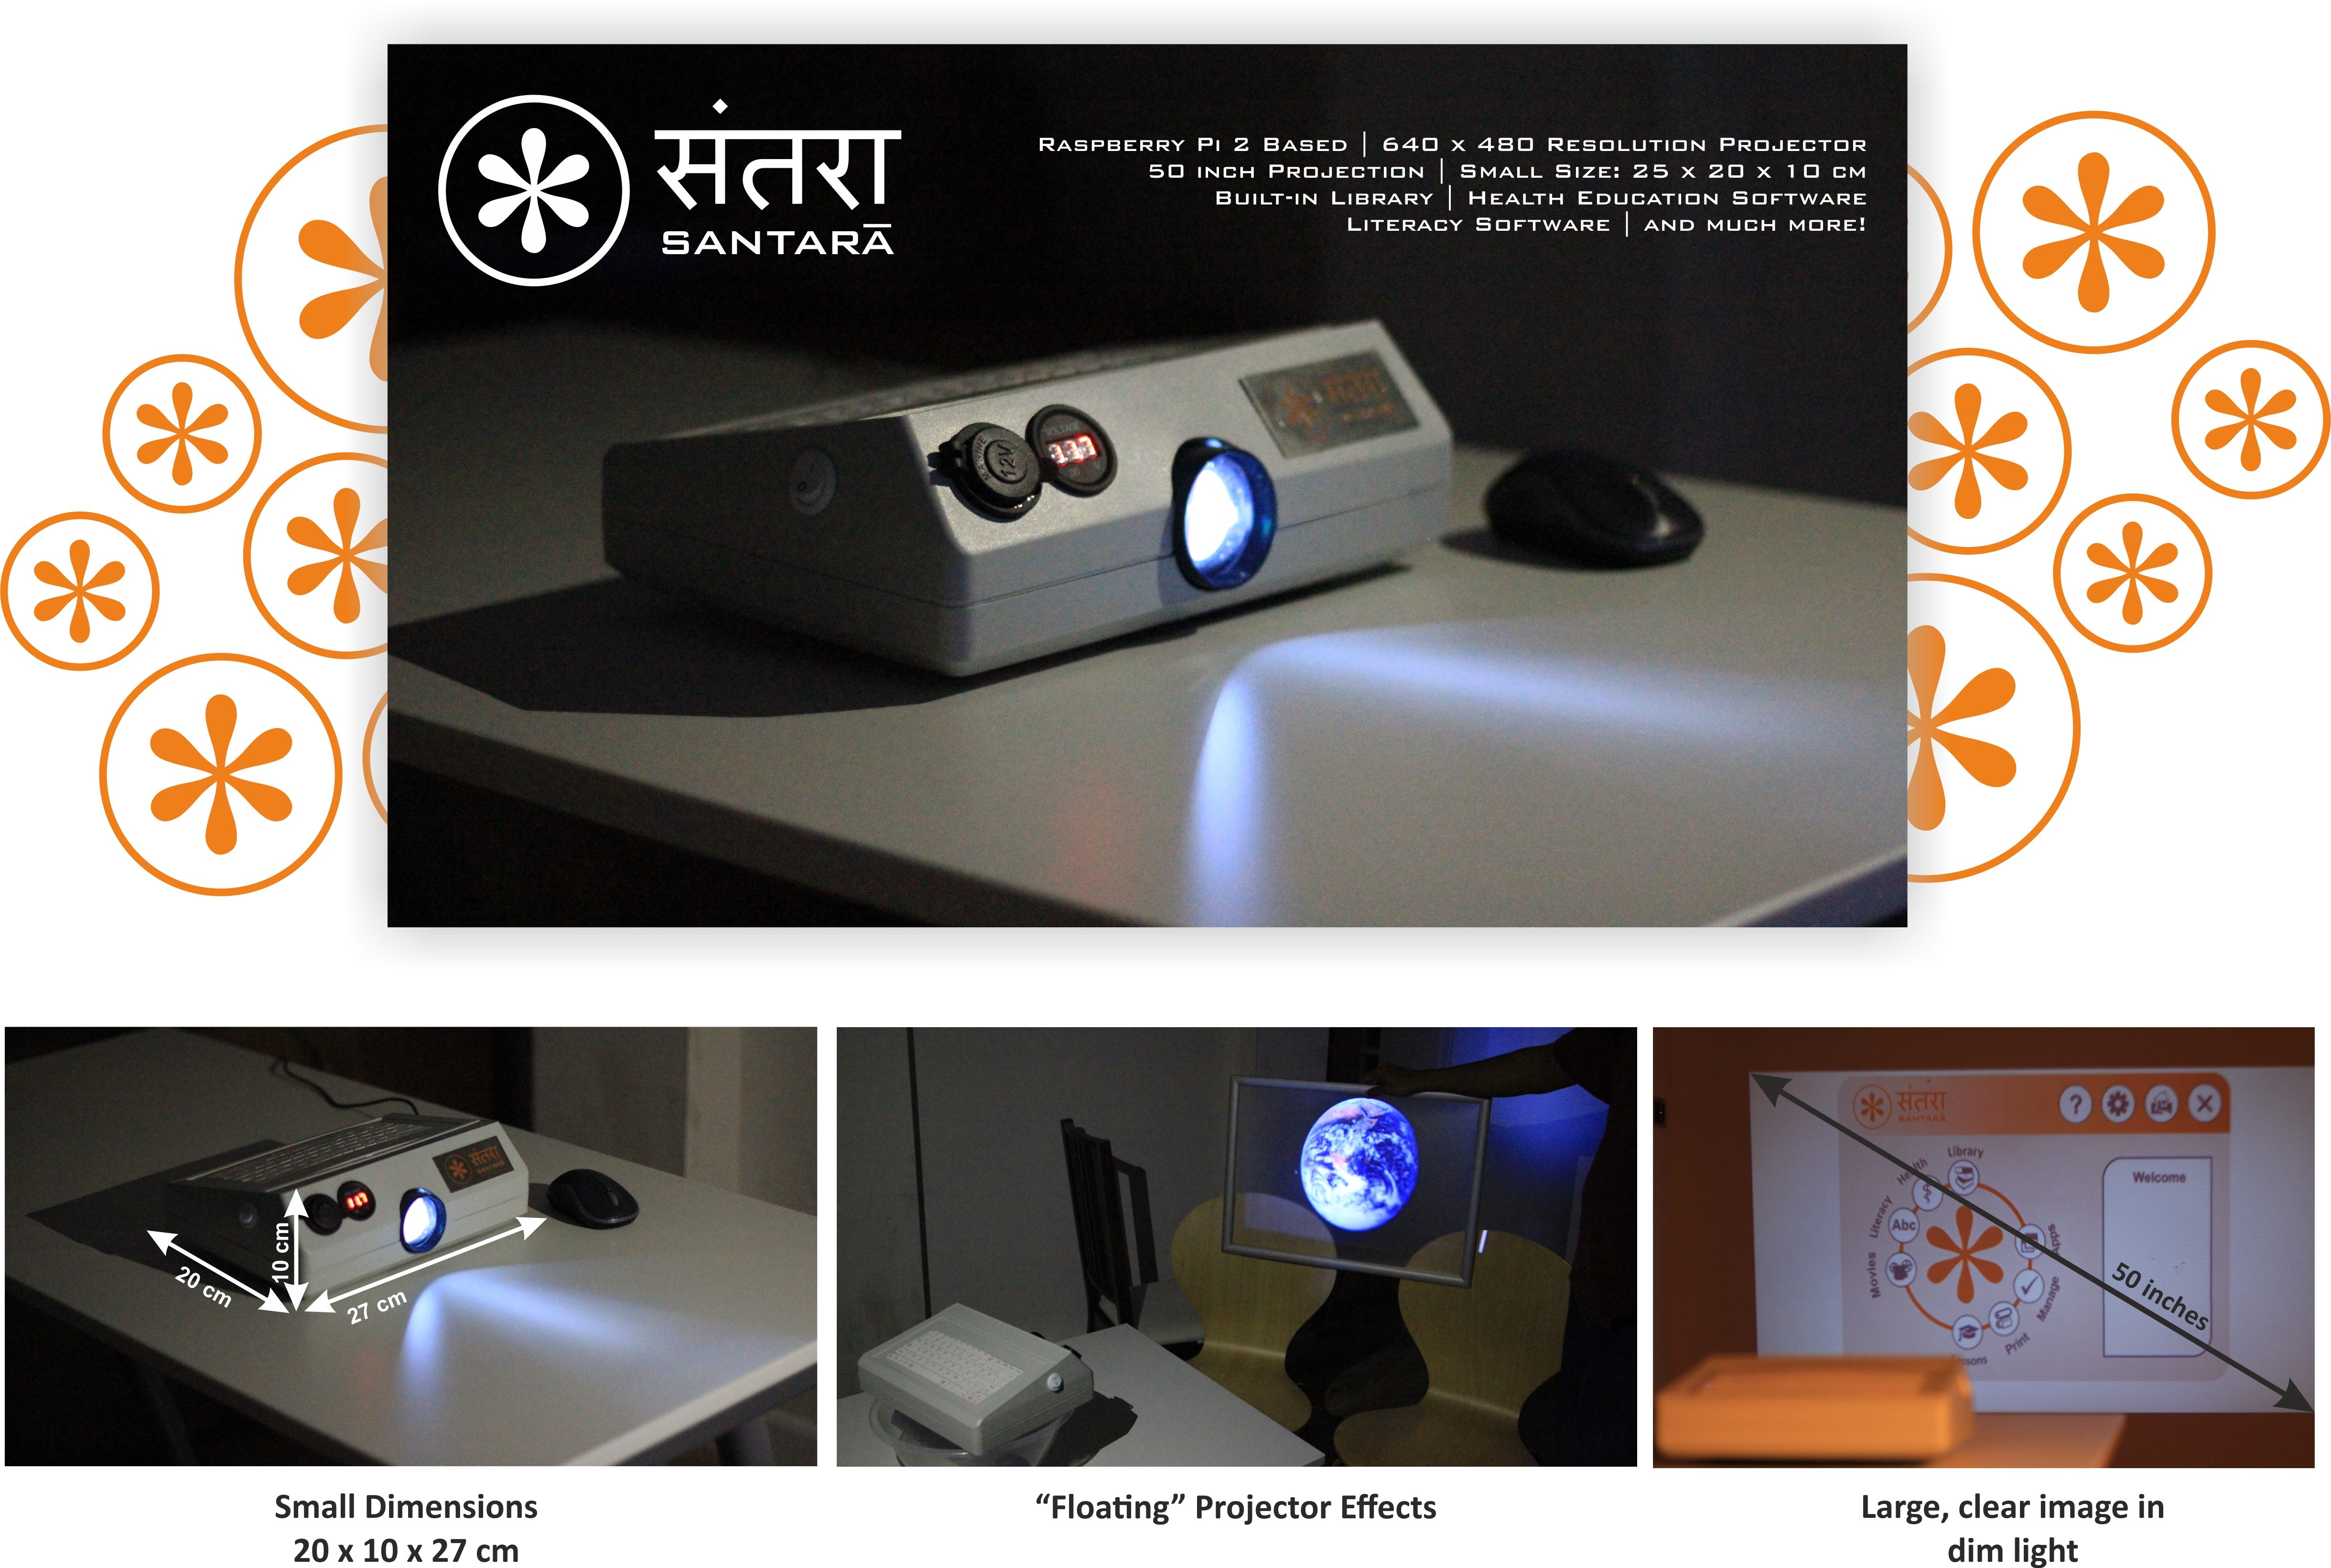 Santara Computer 100 To Educate The World Indiegogo We Have A New Is Revolutionary Based On Rasberry Pi 2 Platform Developed Built In Mini Projector Which Can Project Large